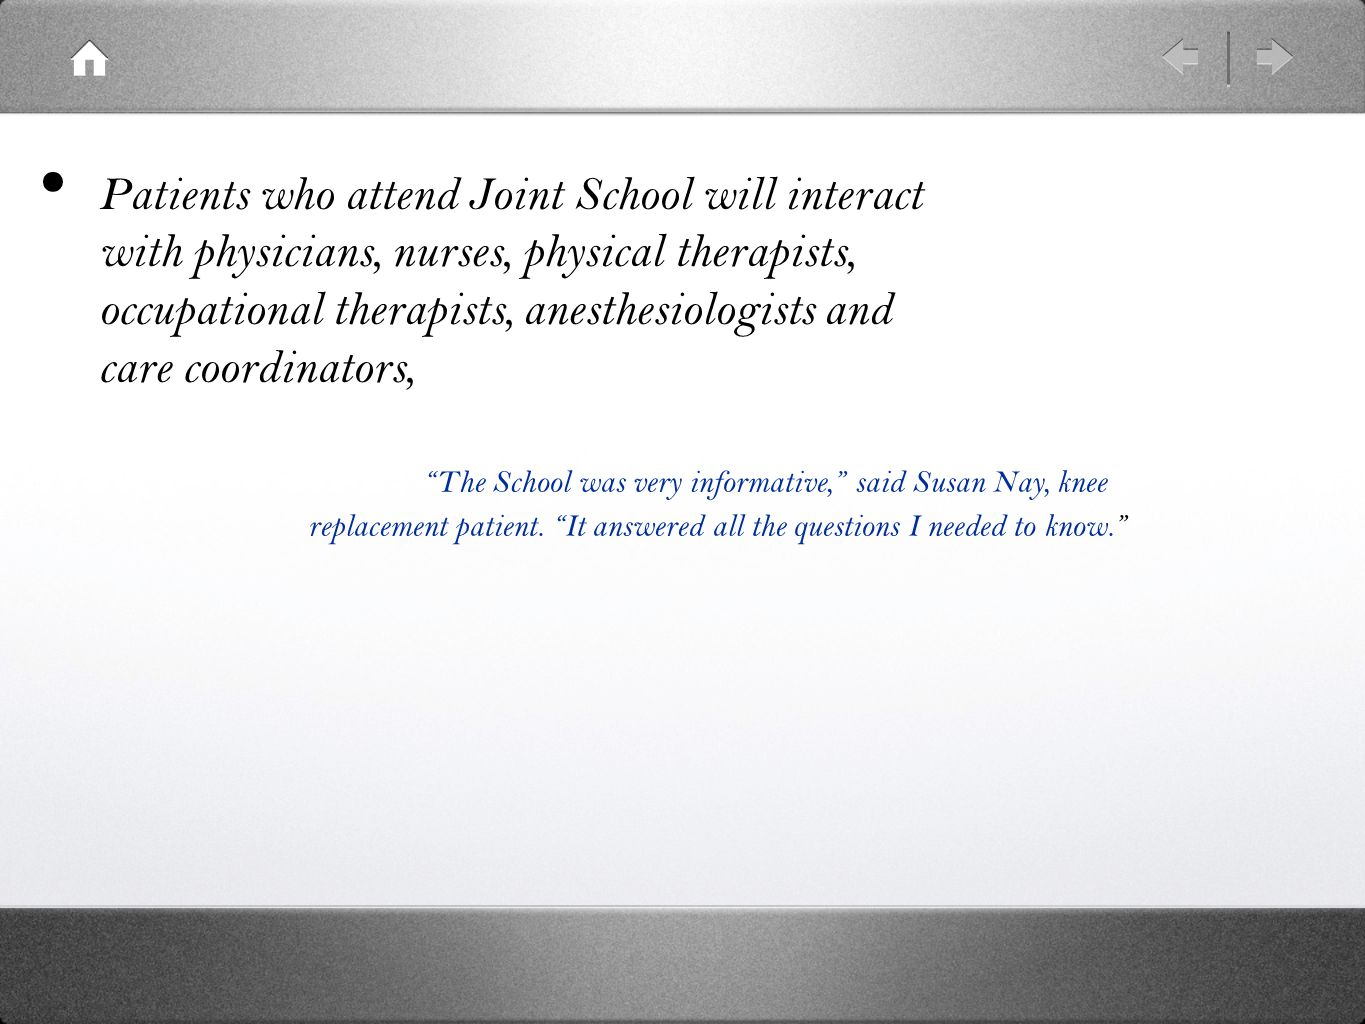 The School was very informative, said Susan Nay, knee replacement patient.